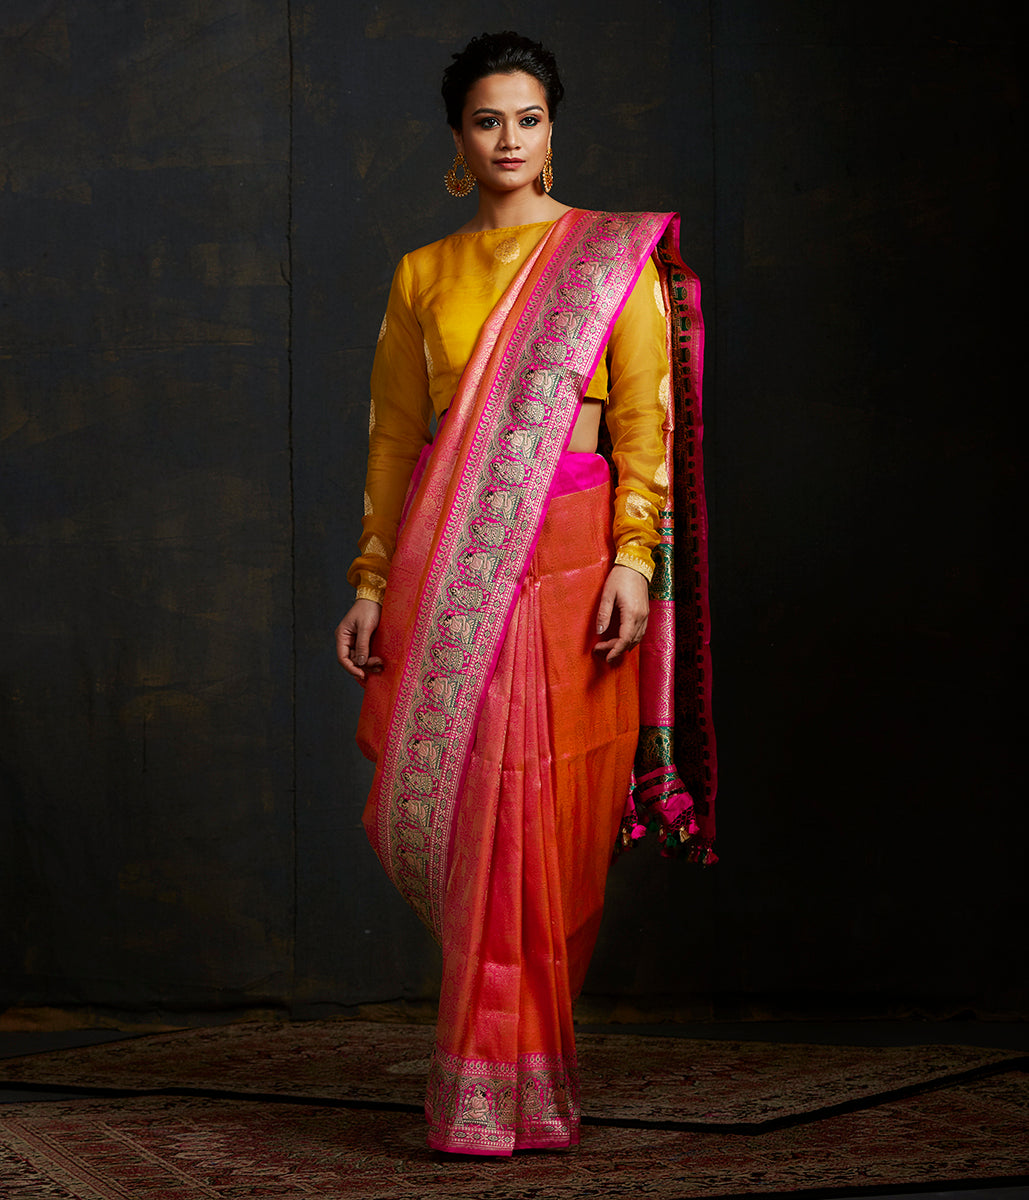 Orange and pink kimkhab shikargah with meenakari mughal border